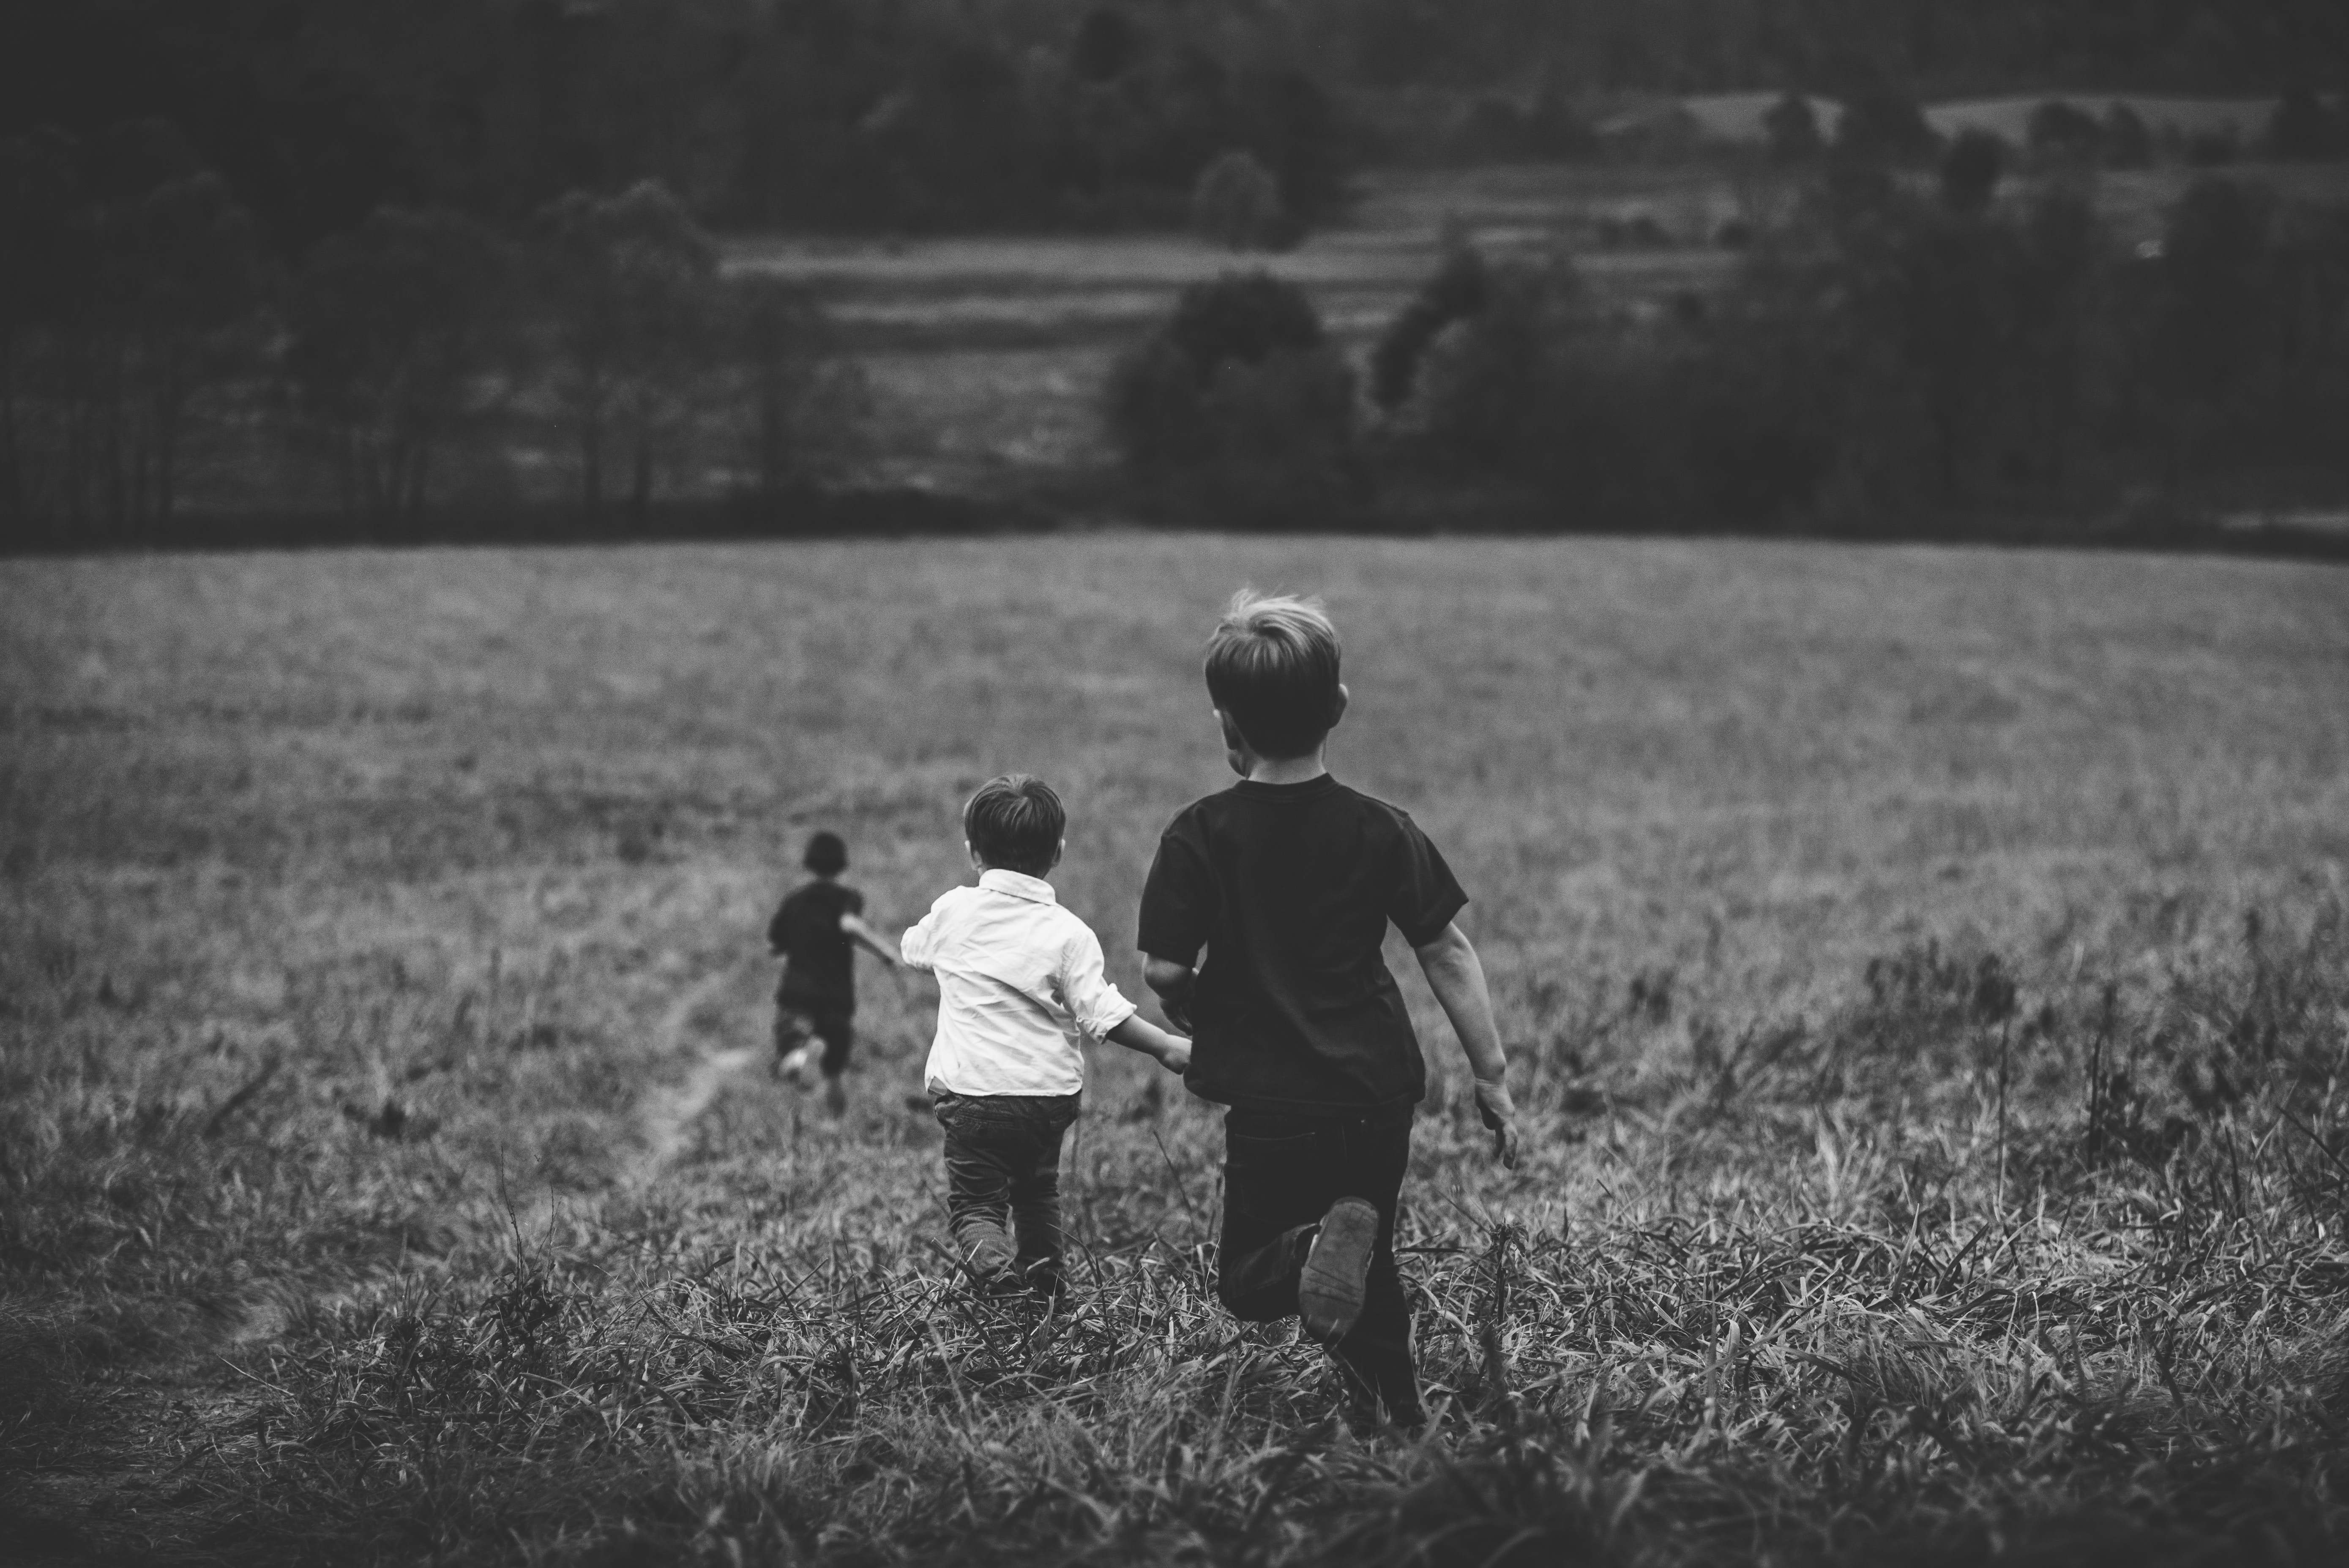 135809 Screensavers and Wallpapers Children for phone. Download Miscellanea, Miscellaneous, Children, Field, Bw, Chb, Run Away, Run pictures for free